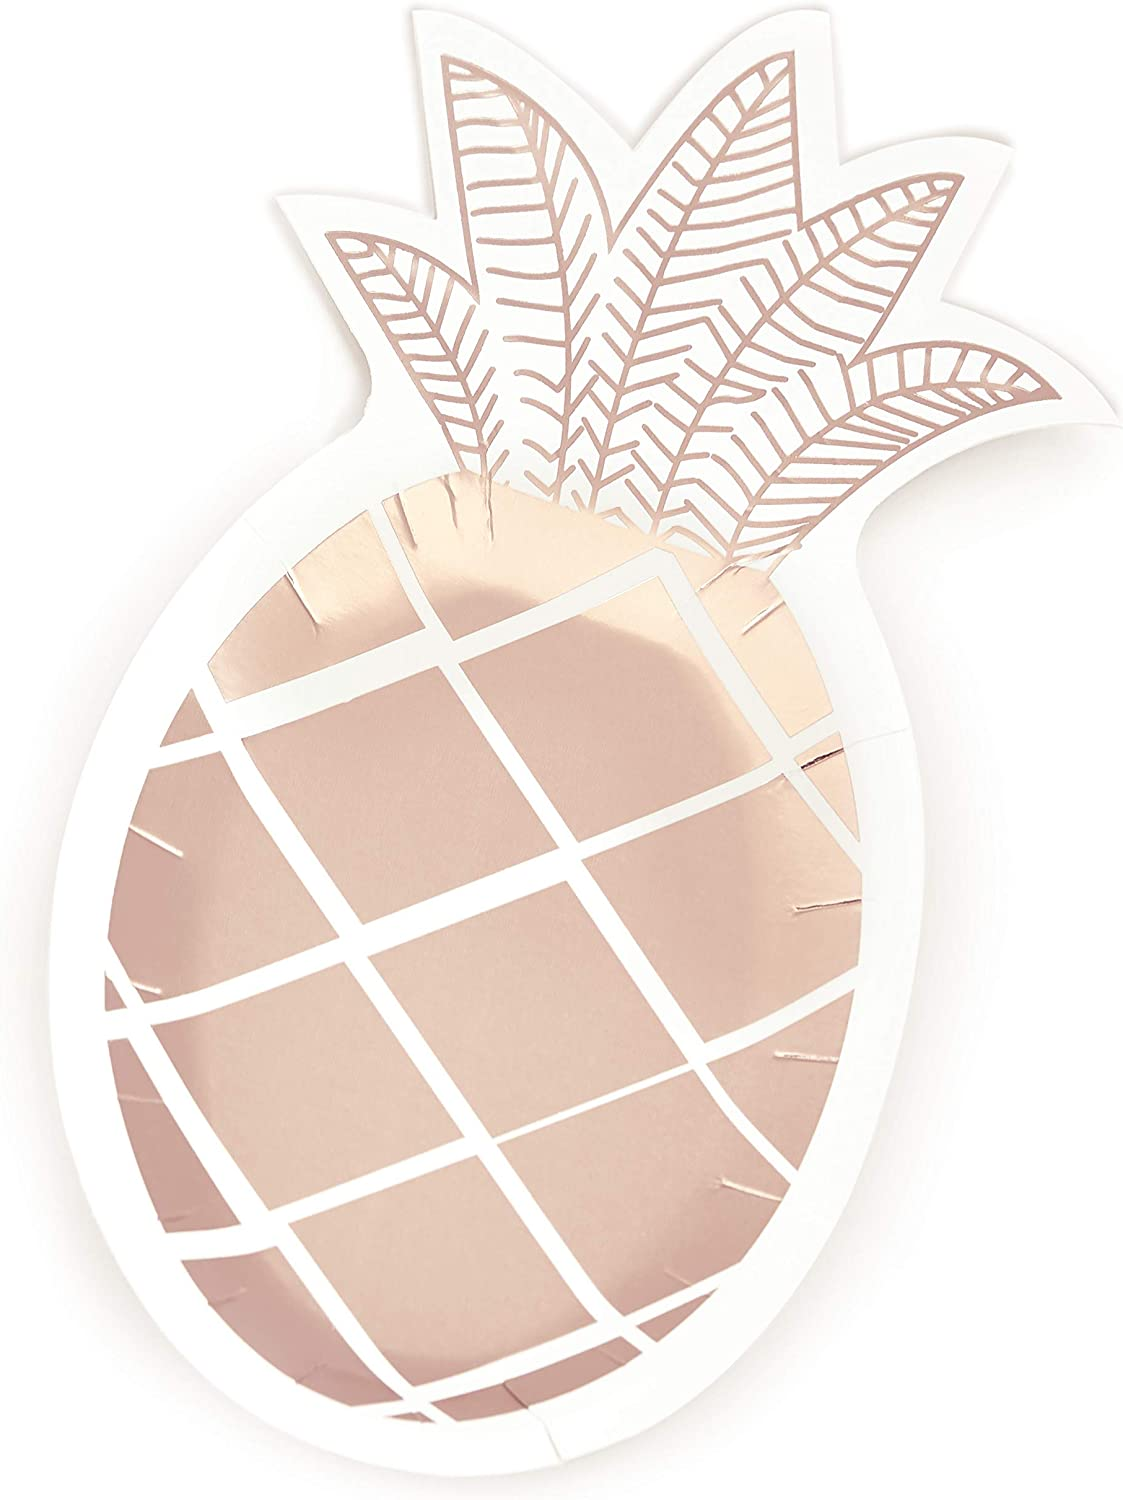 15 pc Rose Gold Pineapple Party Plates - Biodegradable 10 by 6 inch Hawaiian Summer Themed - Wedding Anniversary Bridal Baby Shower Bachelorette Birthday School Graduation Party Supplies Biodegradable